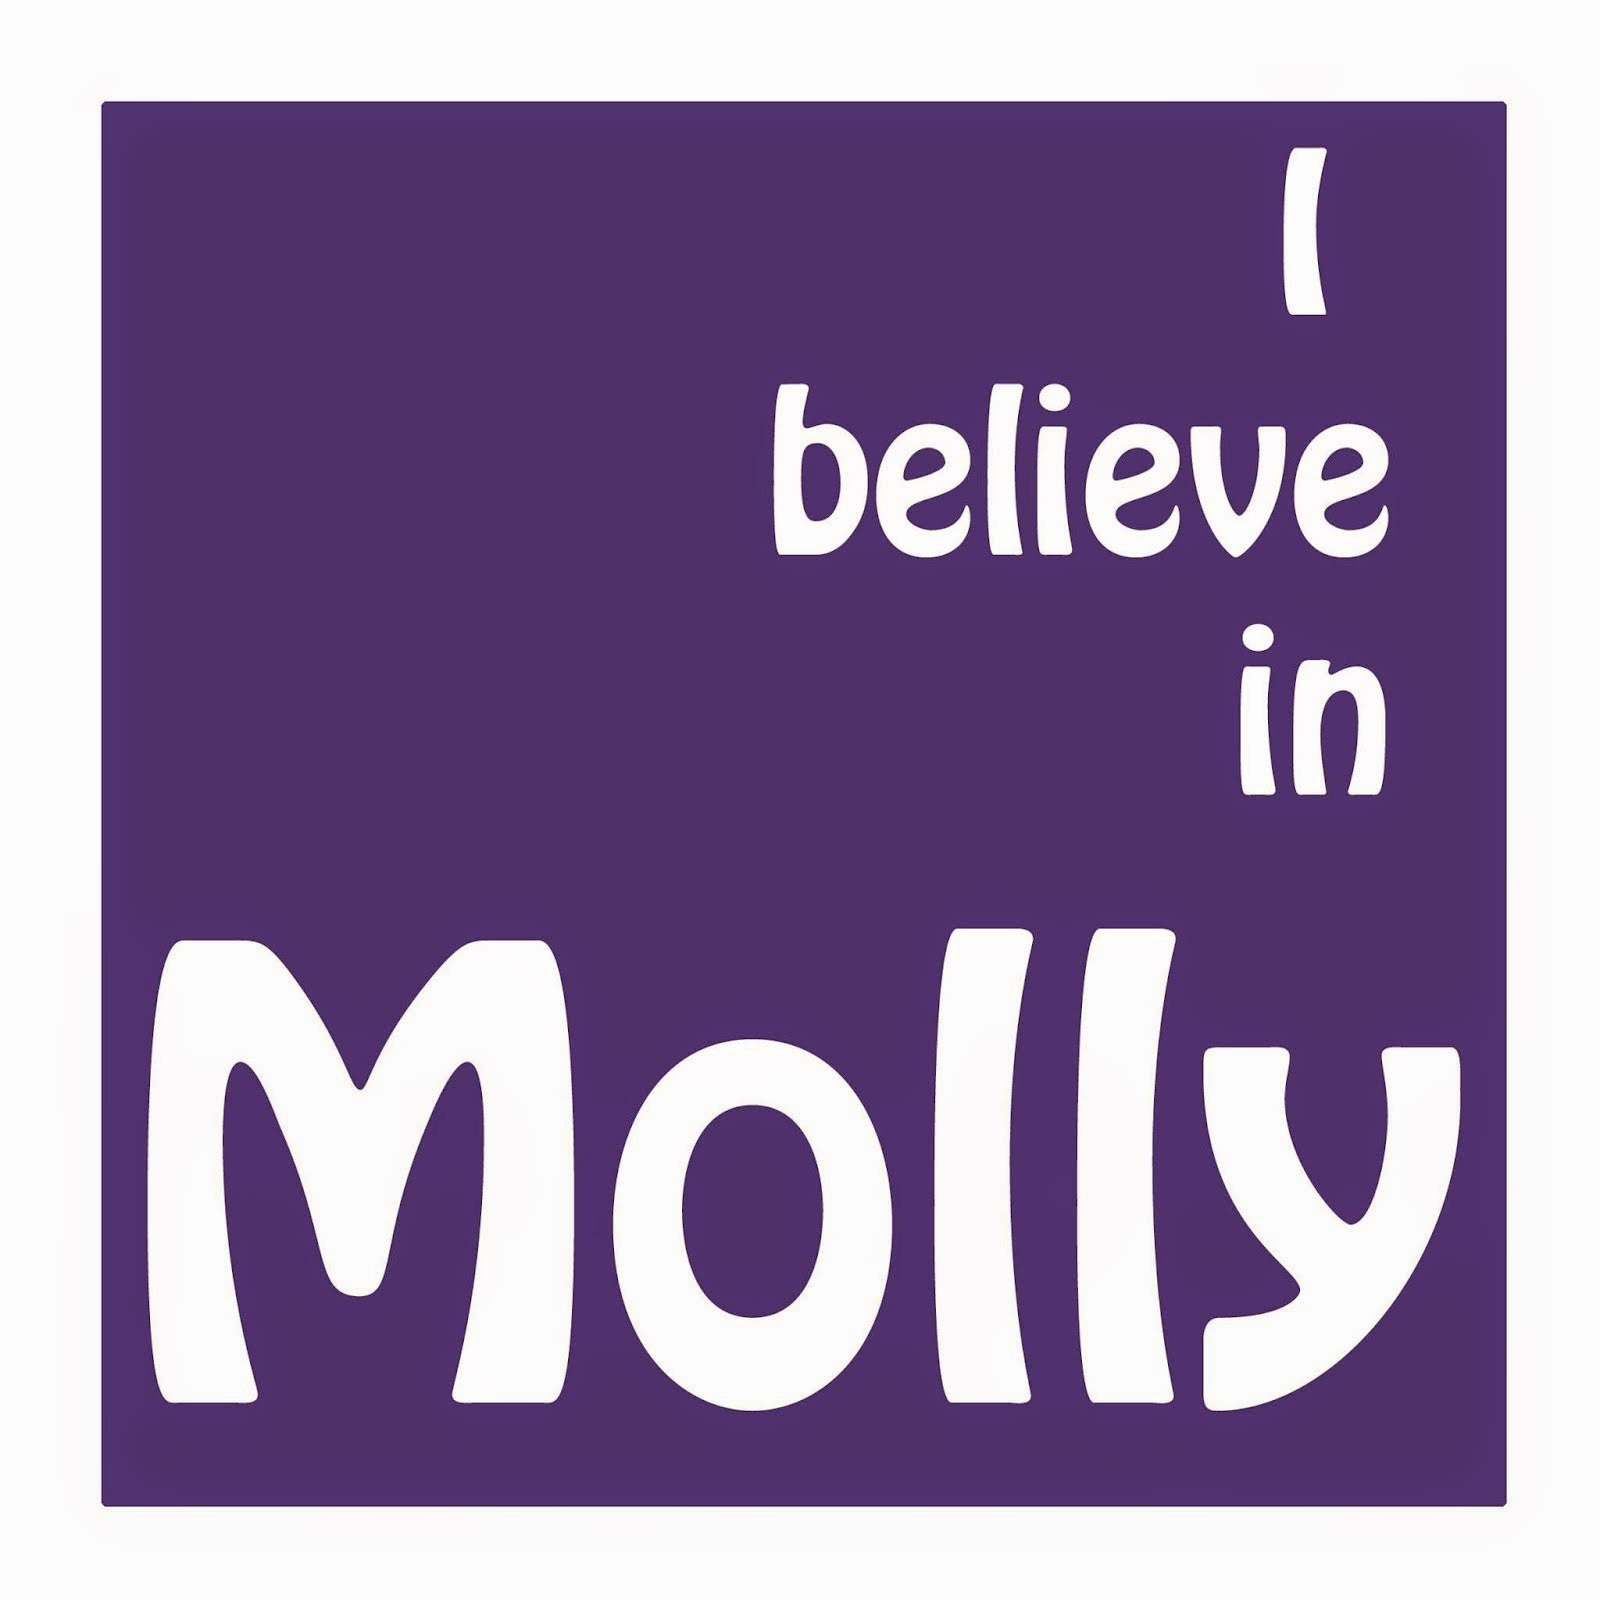 The Miracles for Molly Dunne Foundation